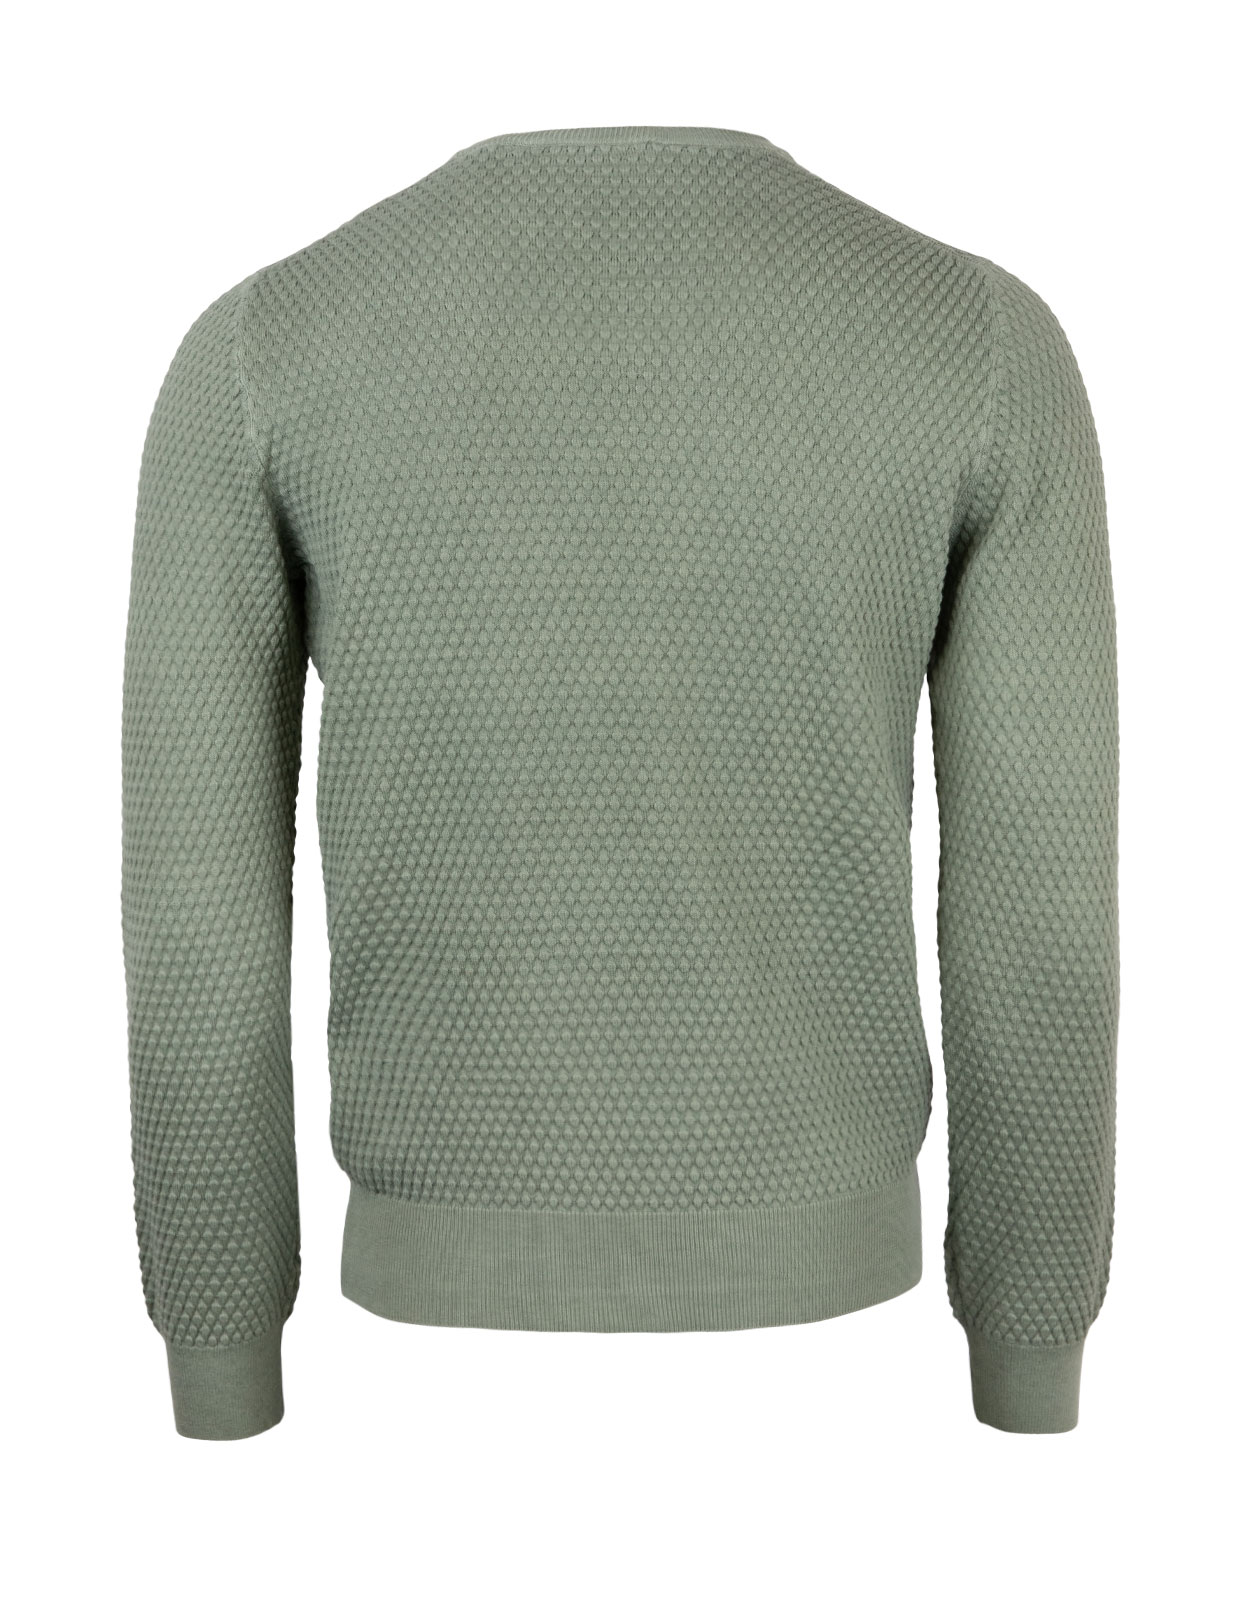 Crew Neck Tröja Knitted Texture Cotton Olive